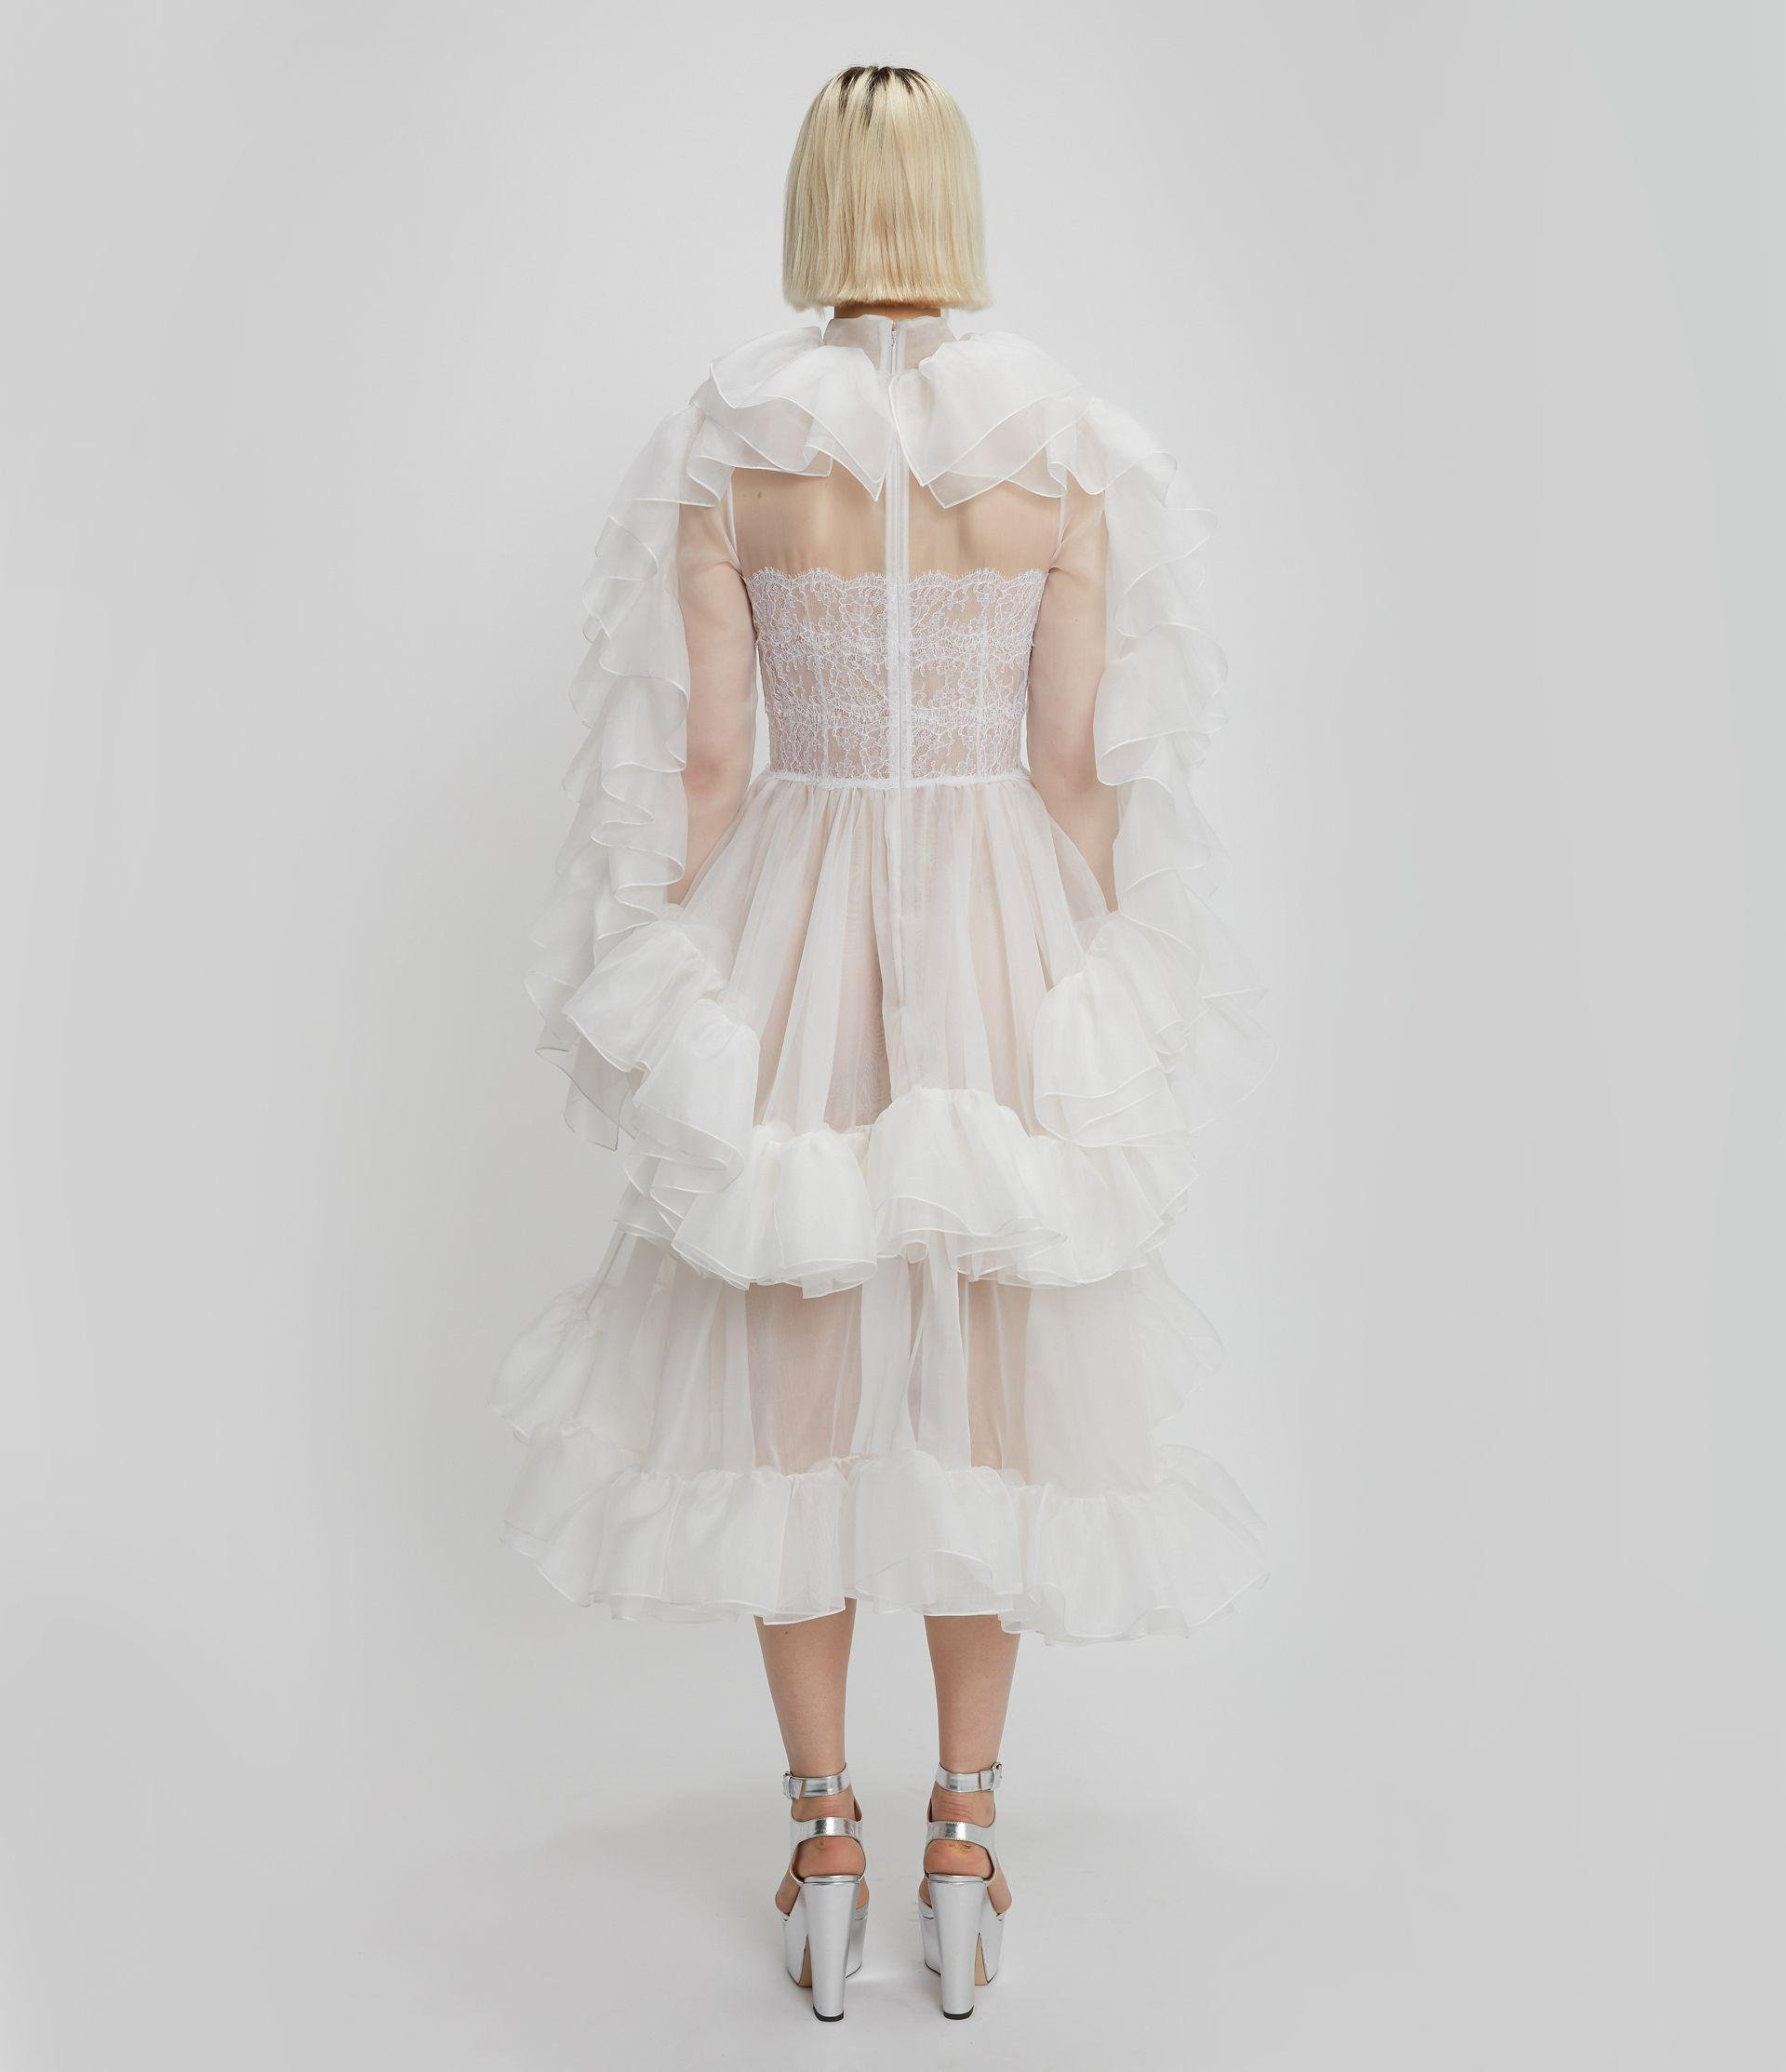 Christopher Kane Bridal: The Organza Frill Gown 2